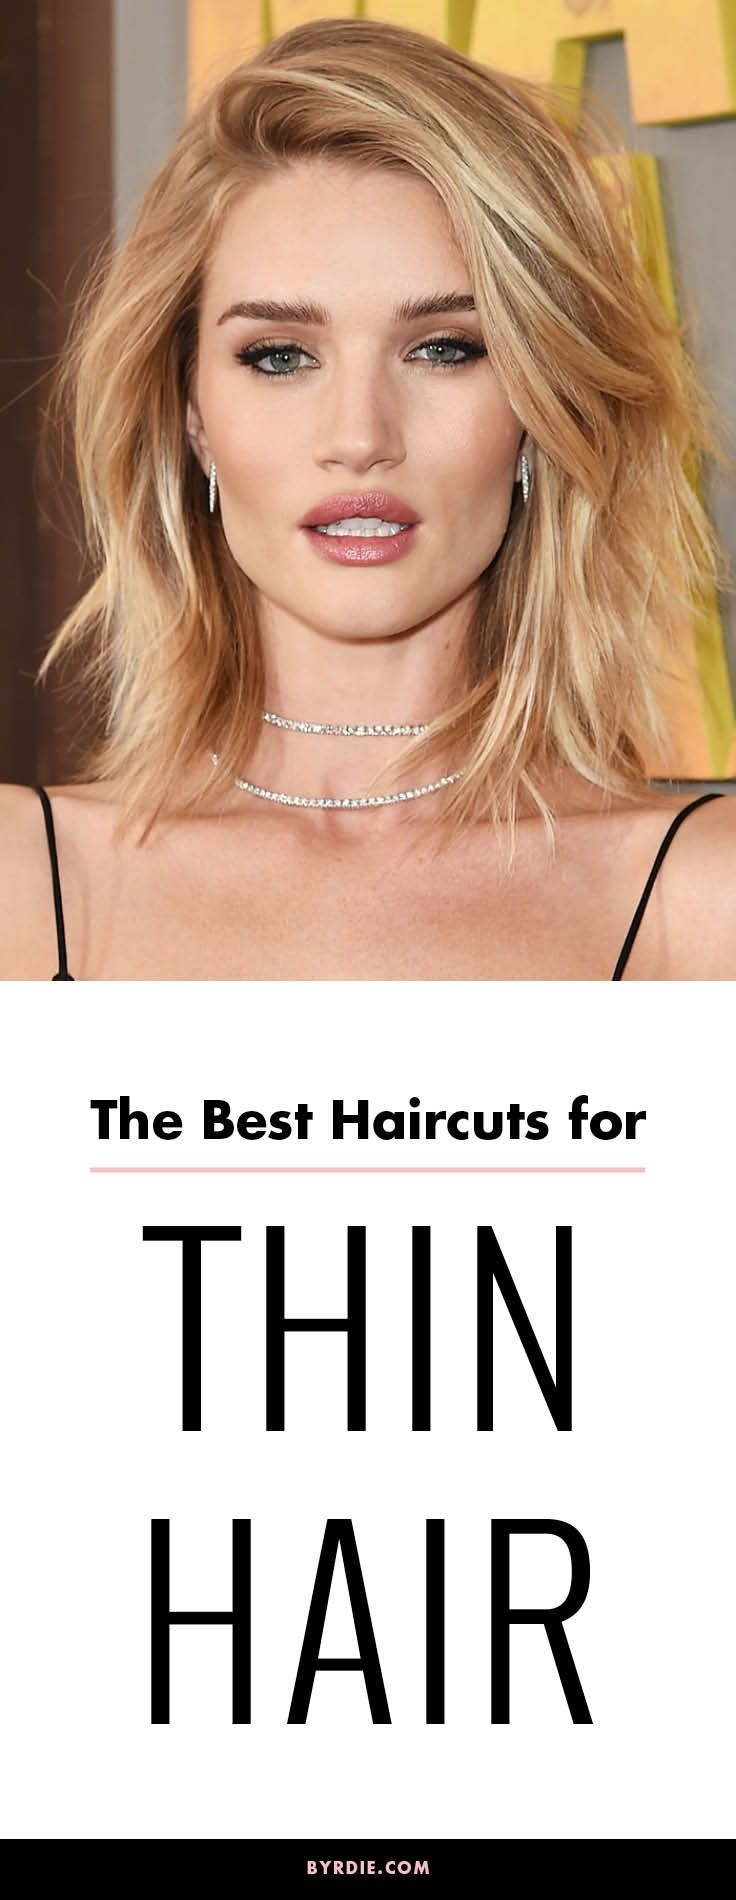 It's Official: These Are The All-Time Best Haircuts For Thin Hair pertaining to Best Haircut For Thin Hair Female